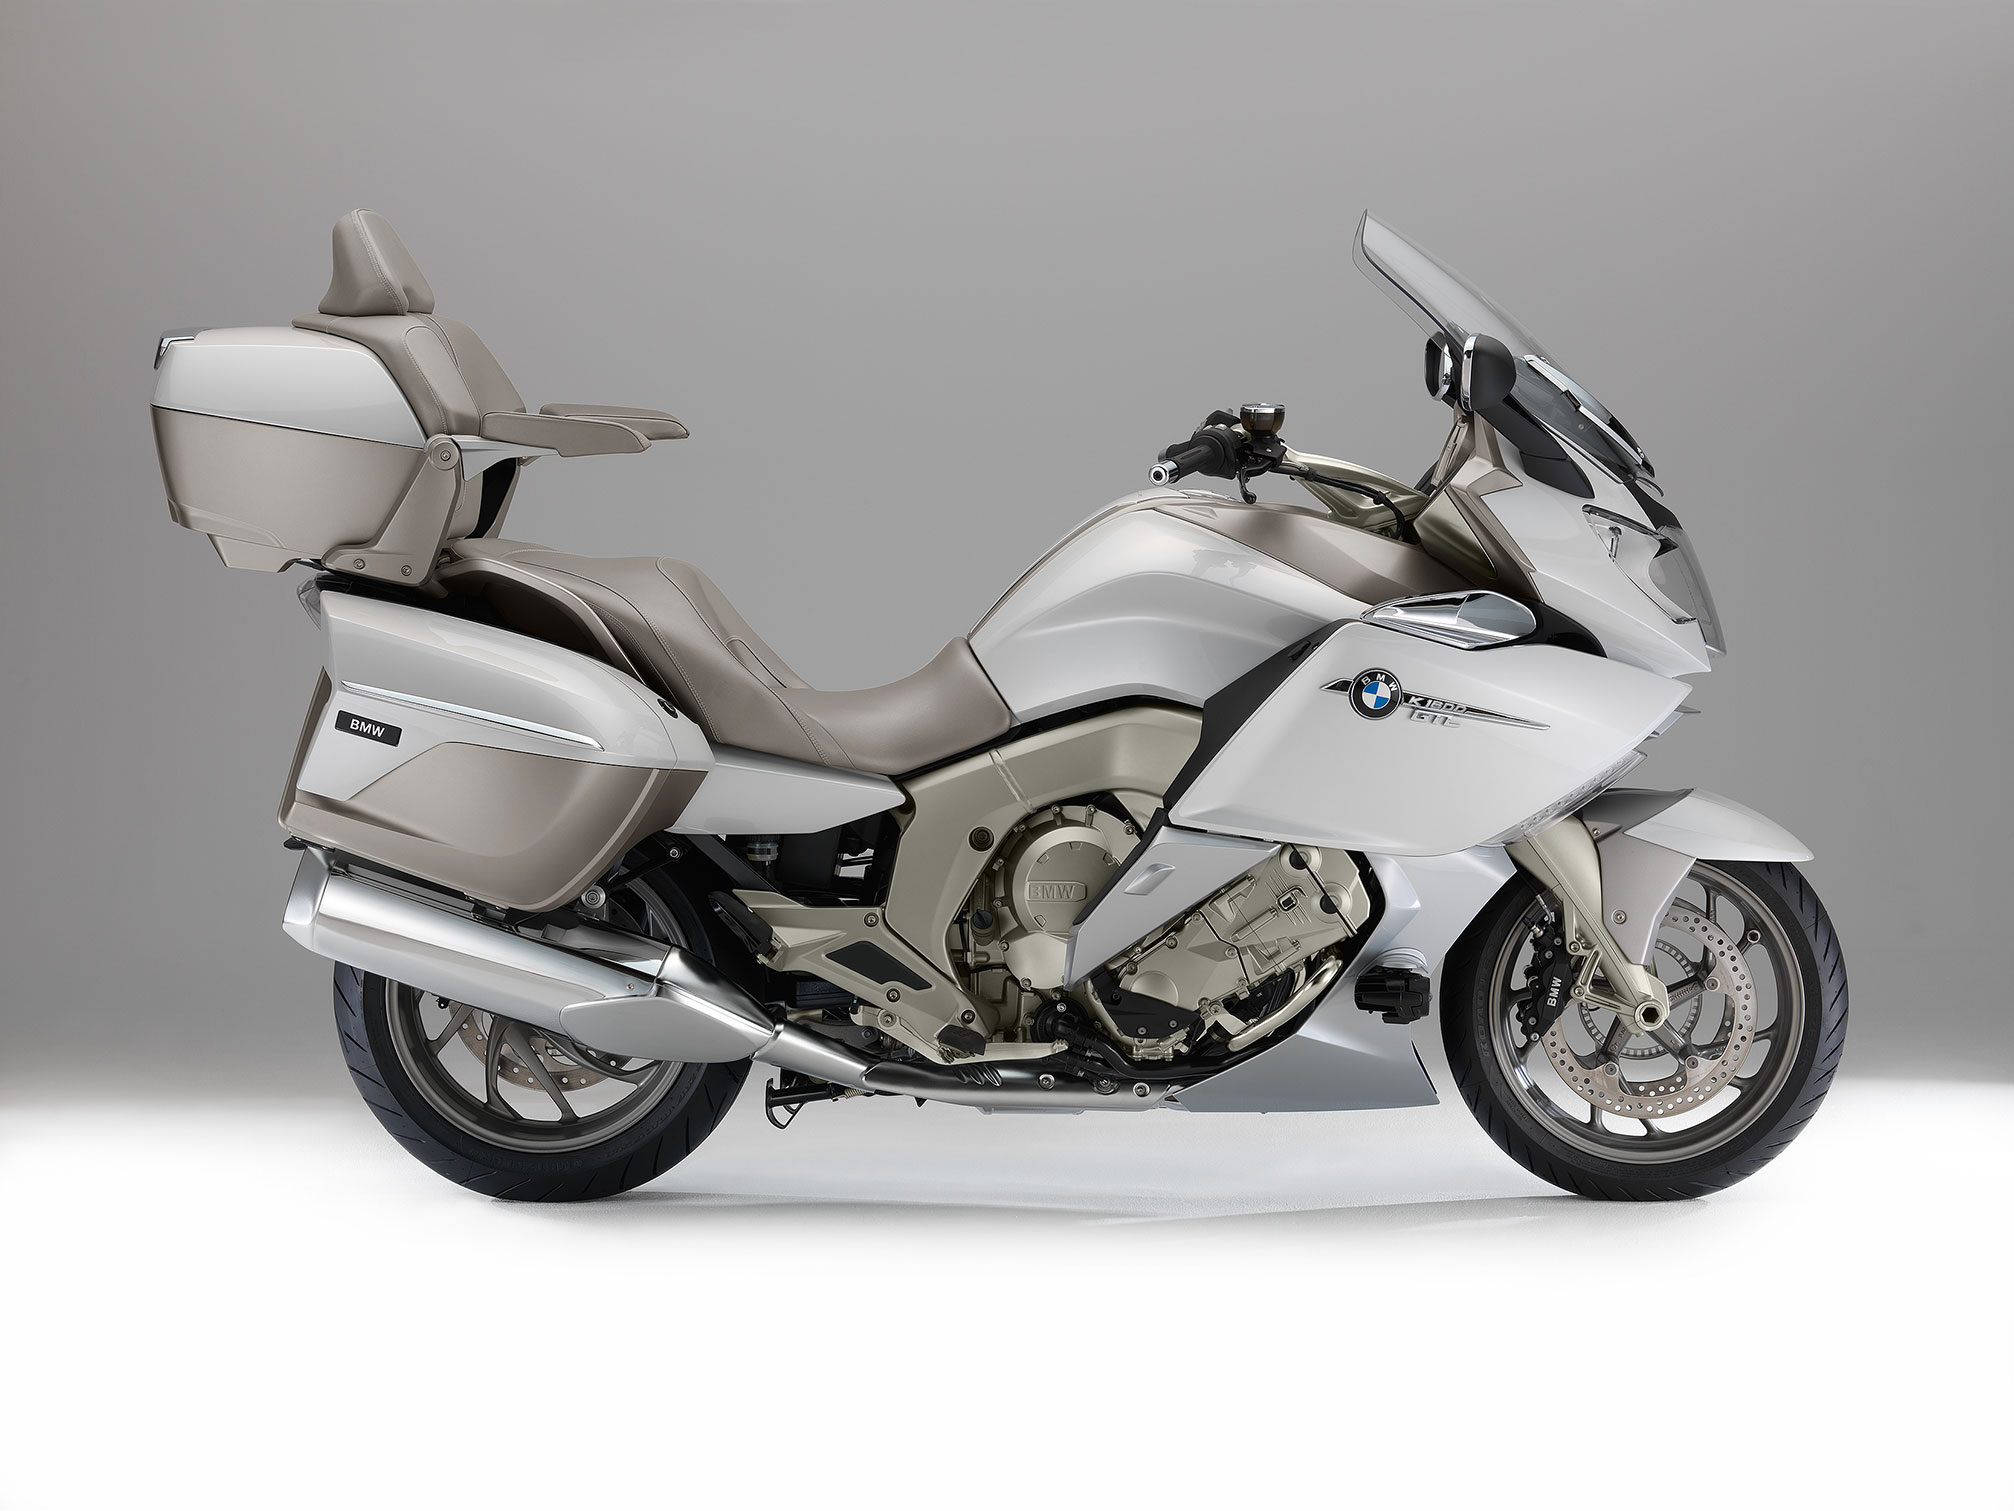 Where can i buy an R2 Phoenix motorcycle? (Iowa)?